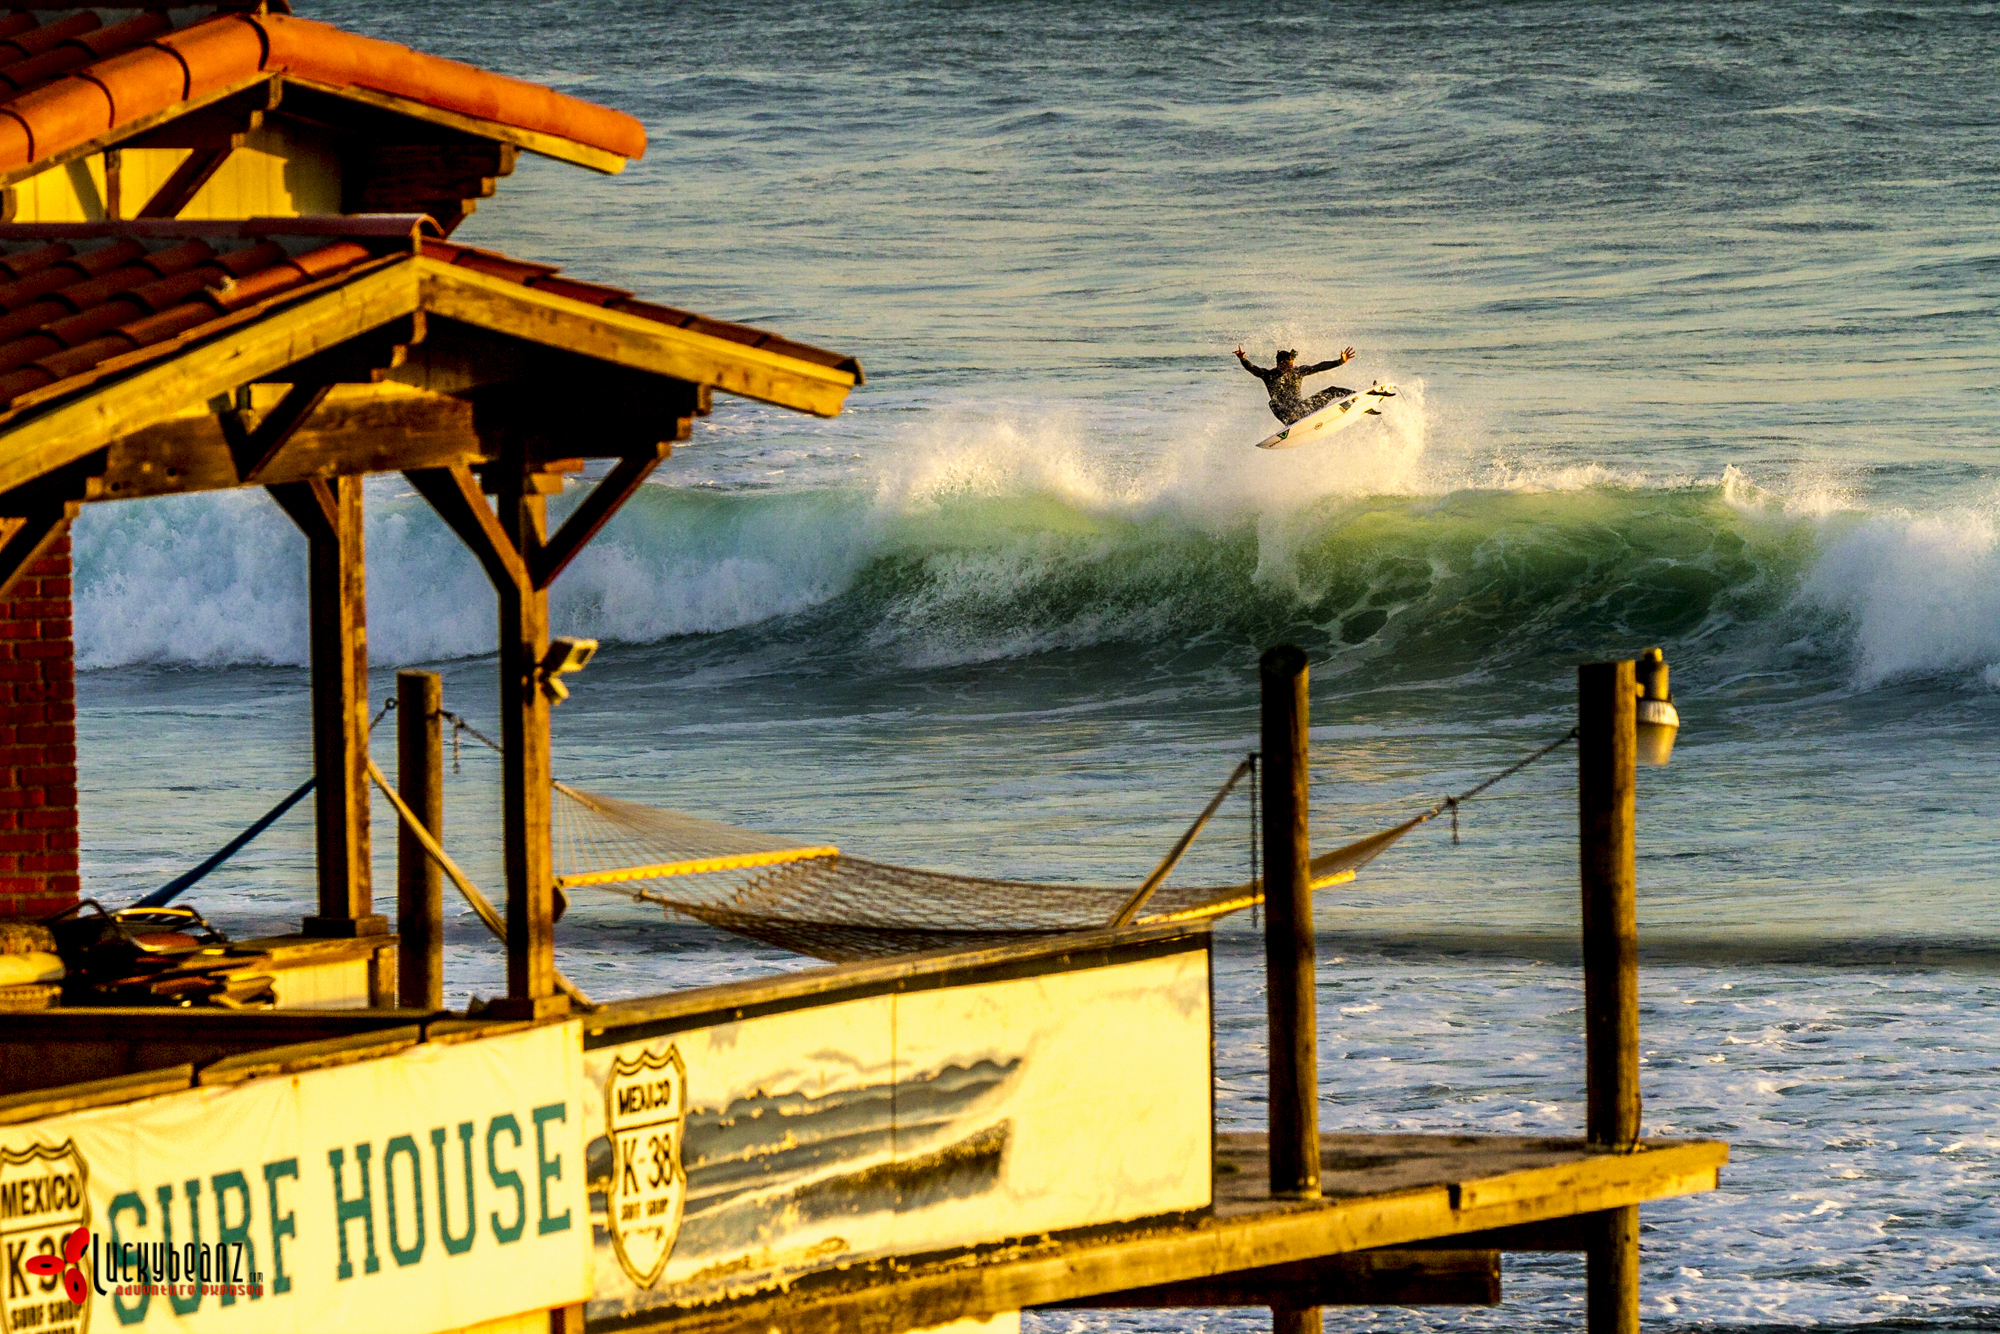 Making surf history at the K38 surf house.